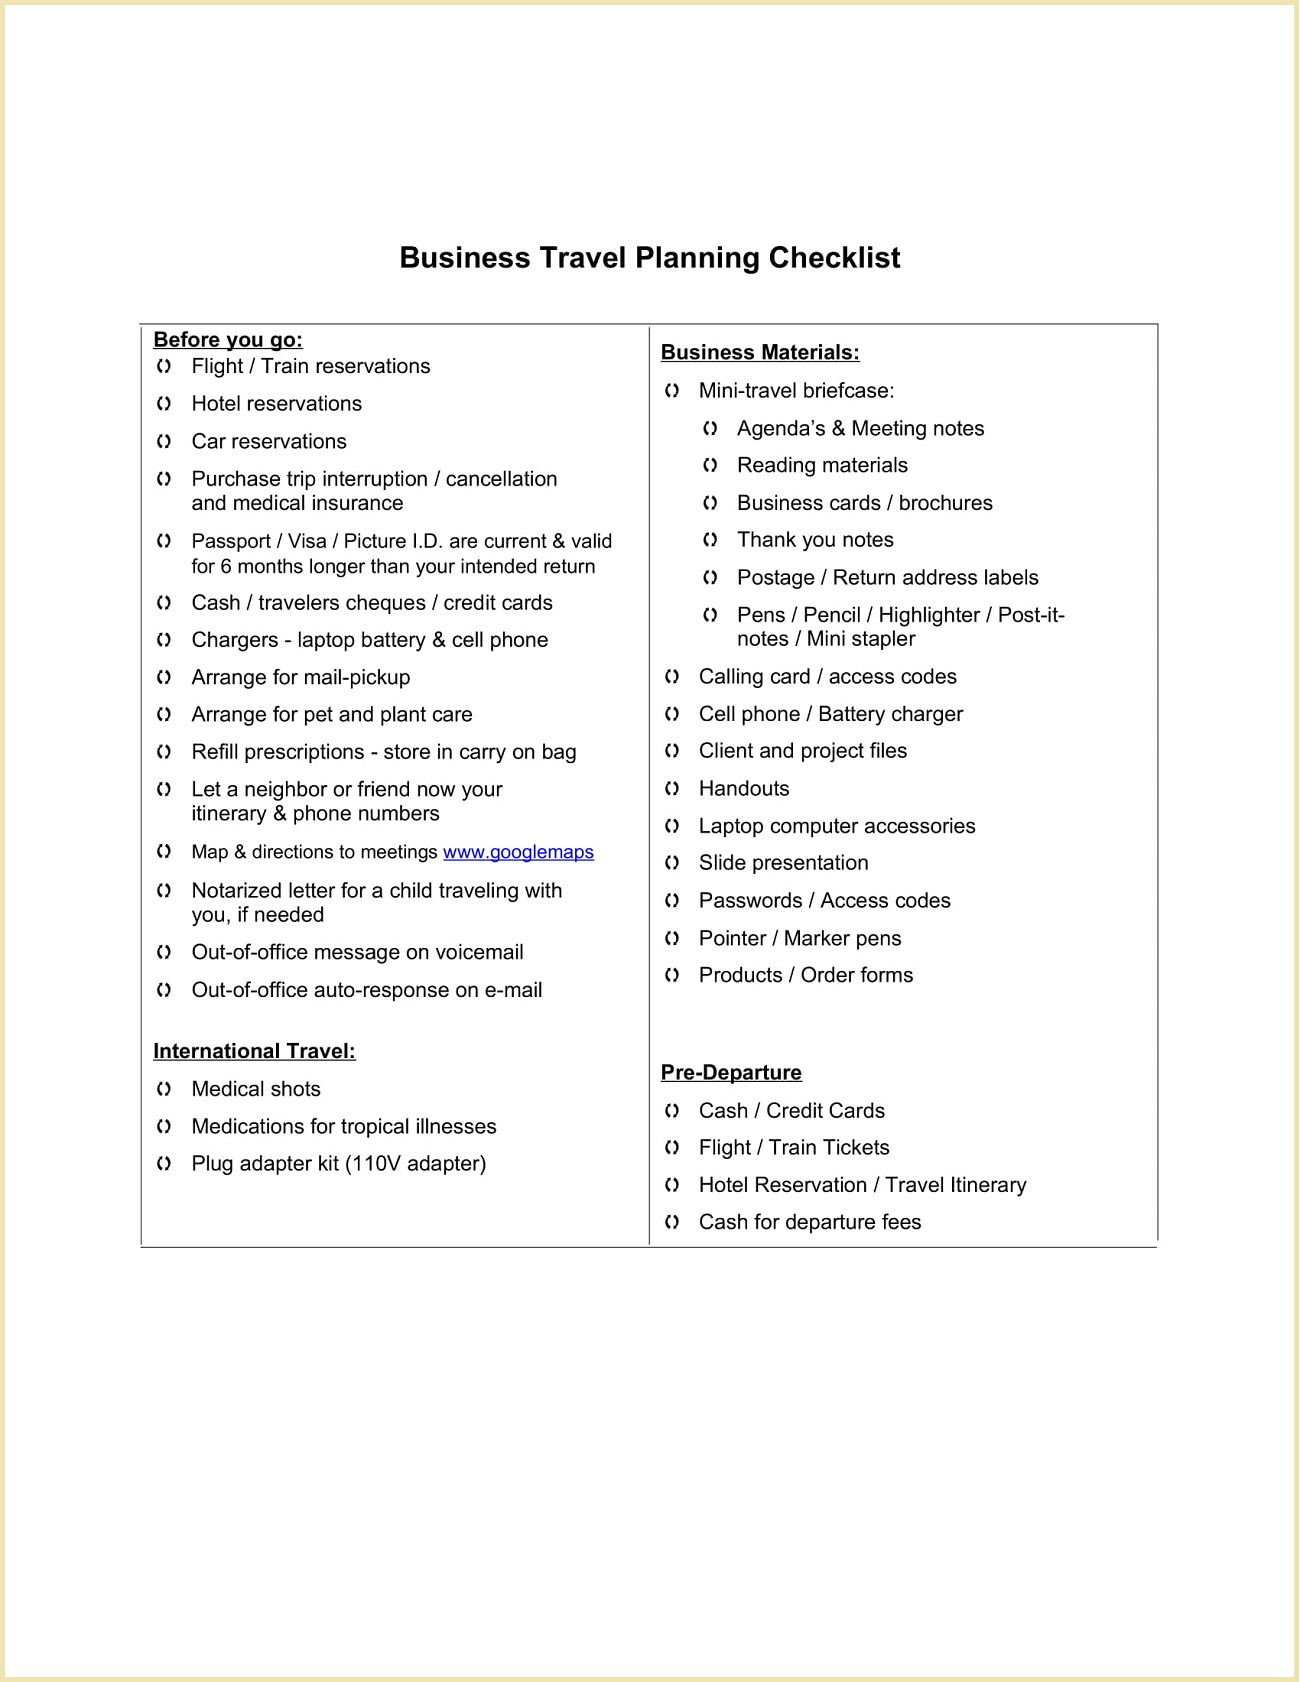 Business Travel Planning Checklist Template Word Doc Executive Assistant Covid-19 Packing Tips Pdf  Example Full